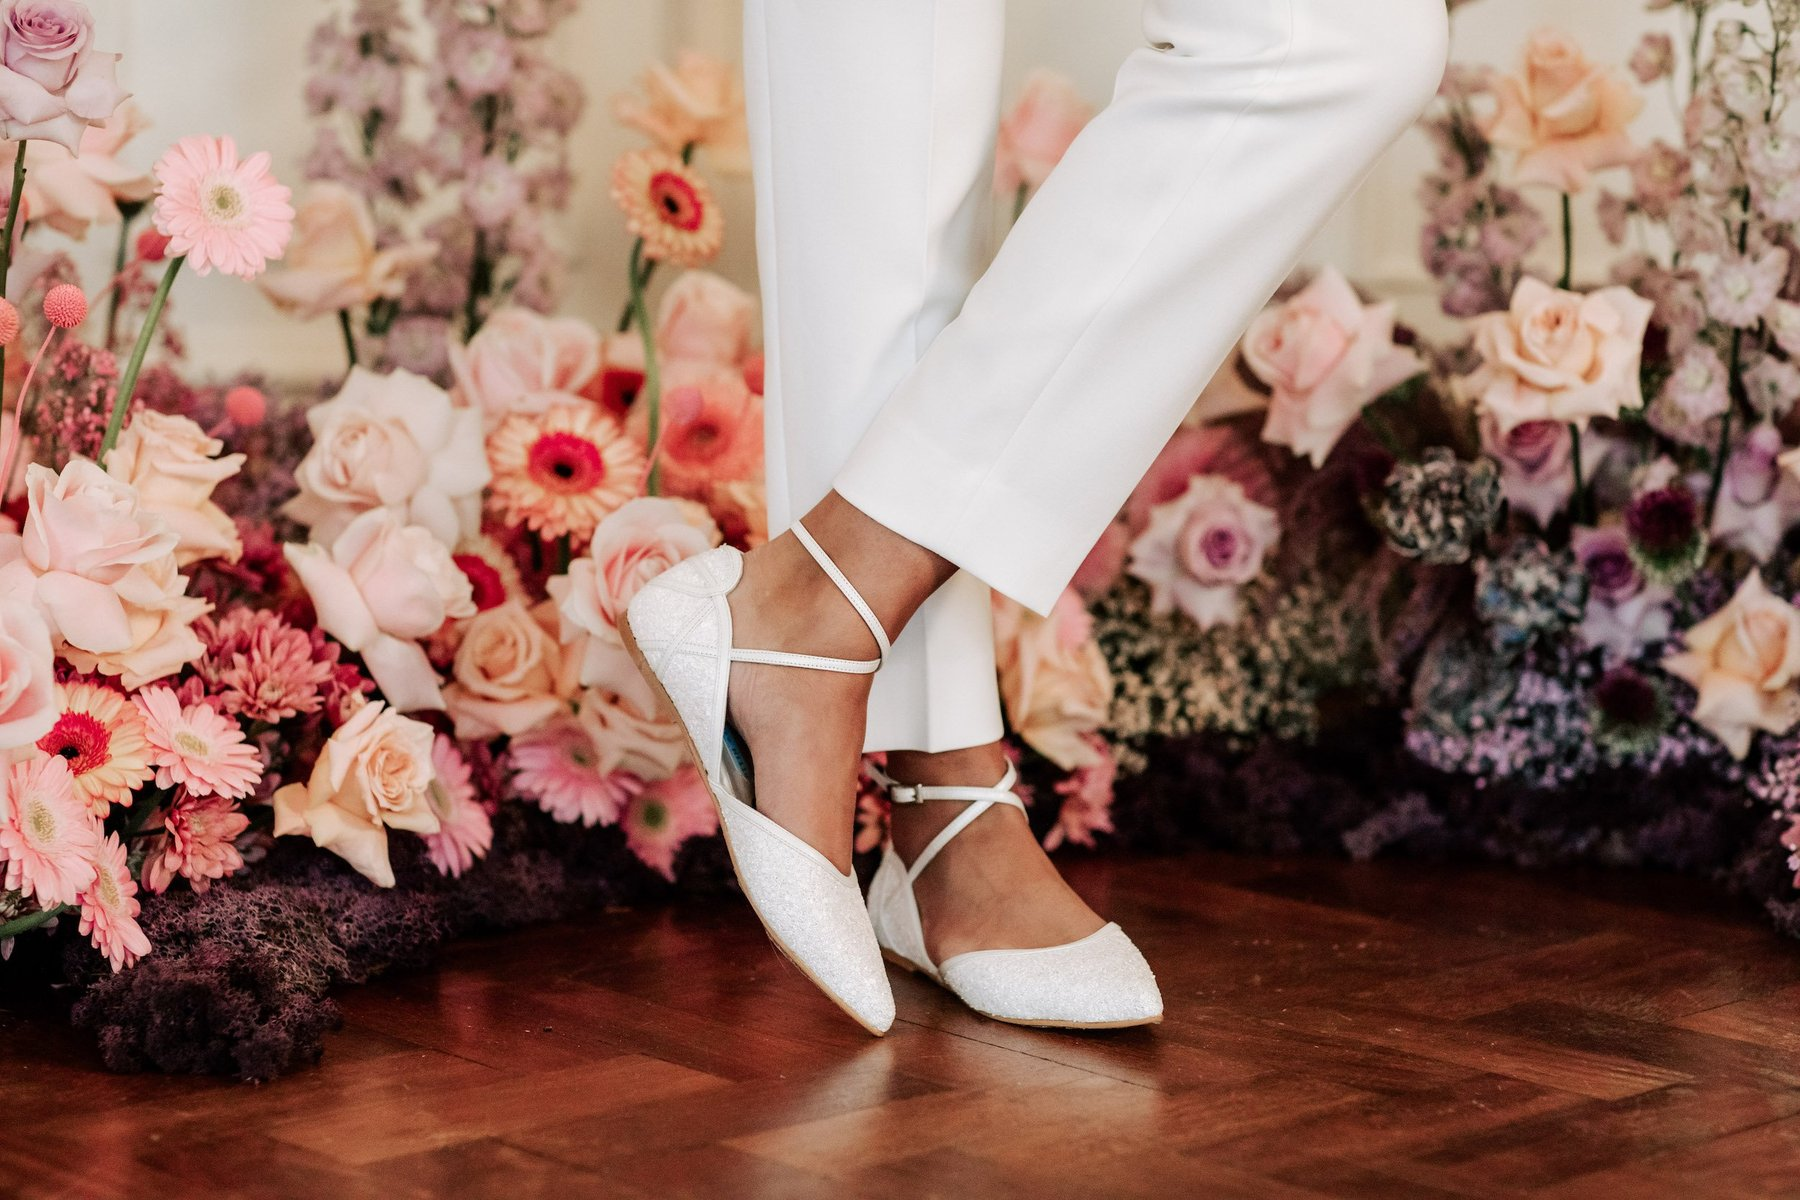 Flat Wedding Shoes 15 Flat Wedding Shoes For Comfort And Style,Different Styles Of Wedding Dresses